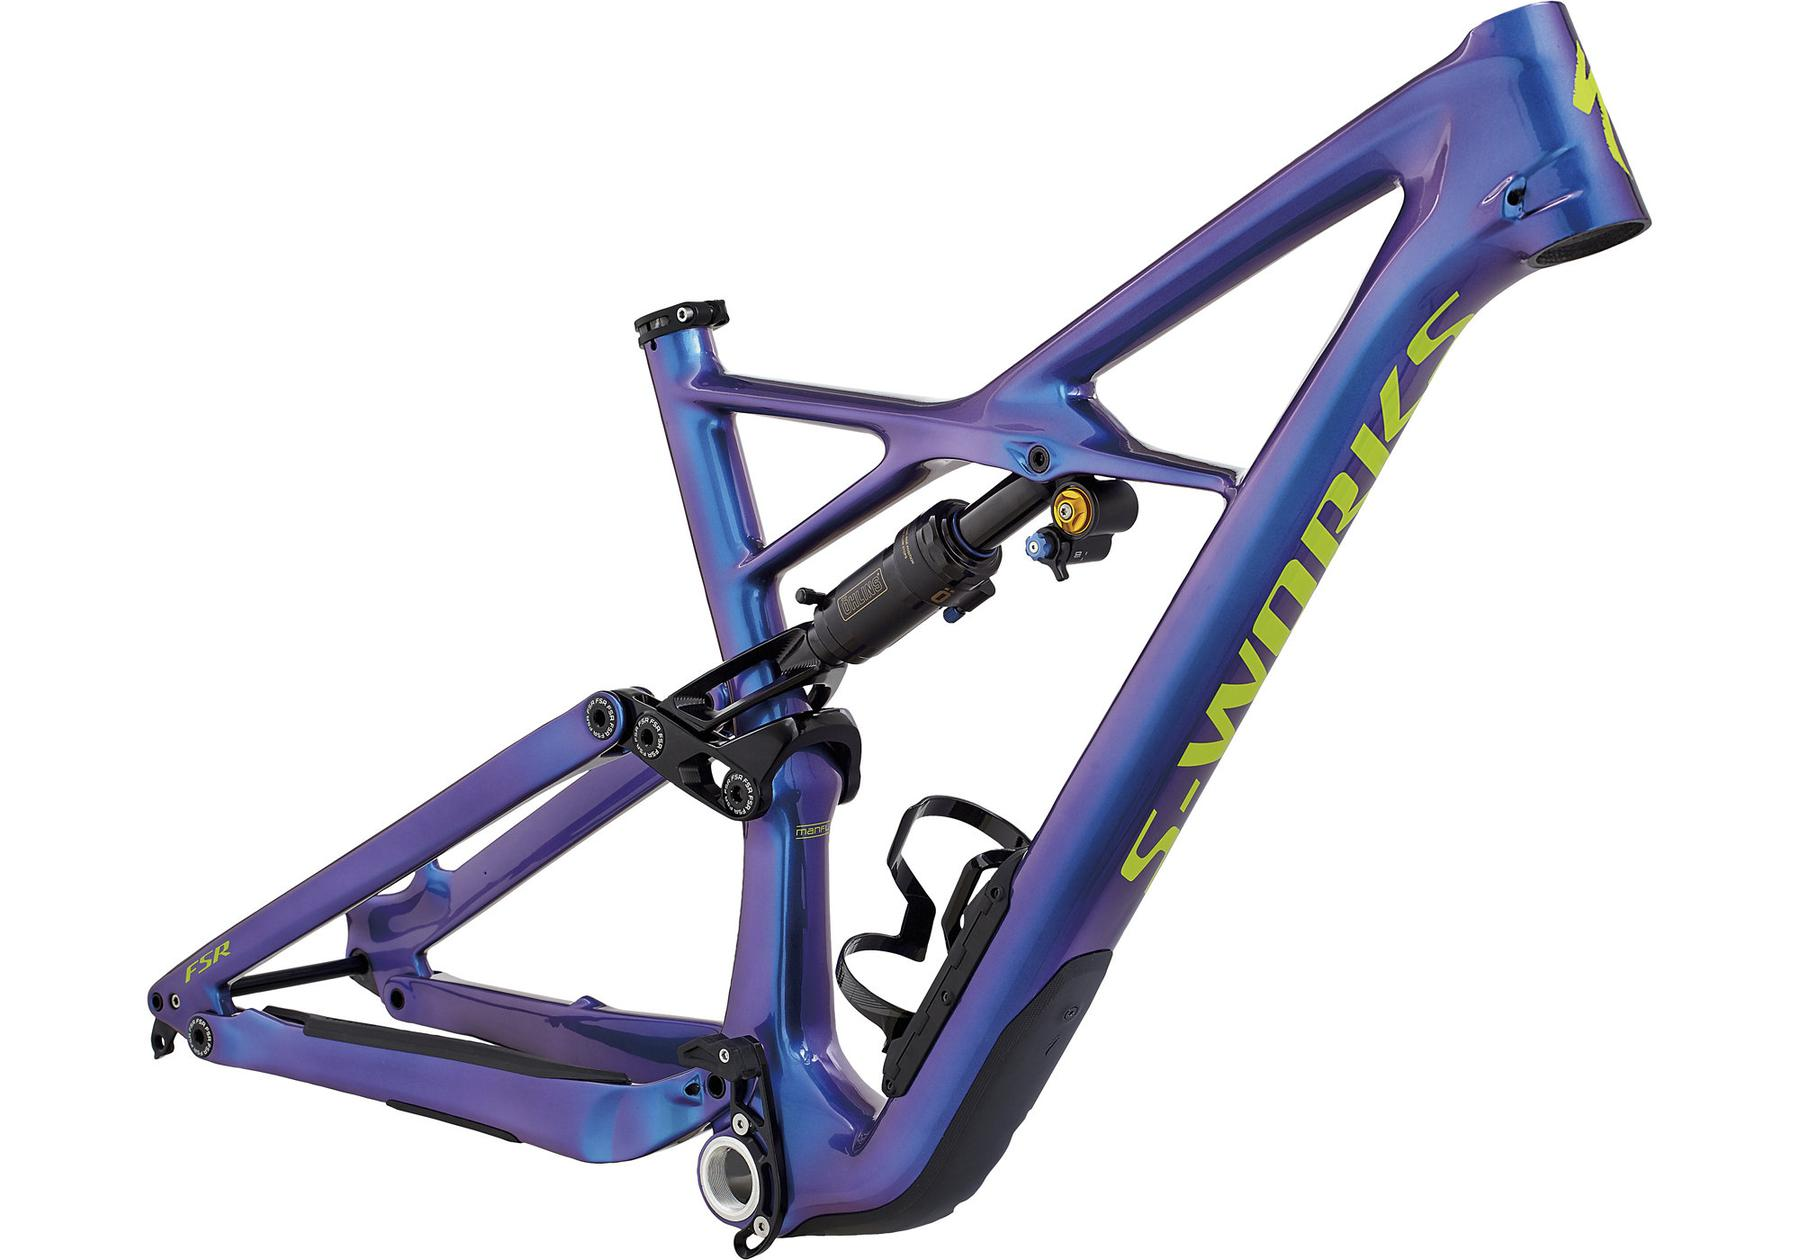 Specialized S-Works Enduro 29 6Fattie Frame Mountainbike Rahmen ...